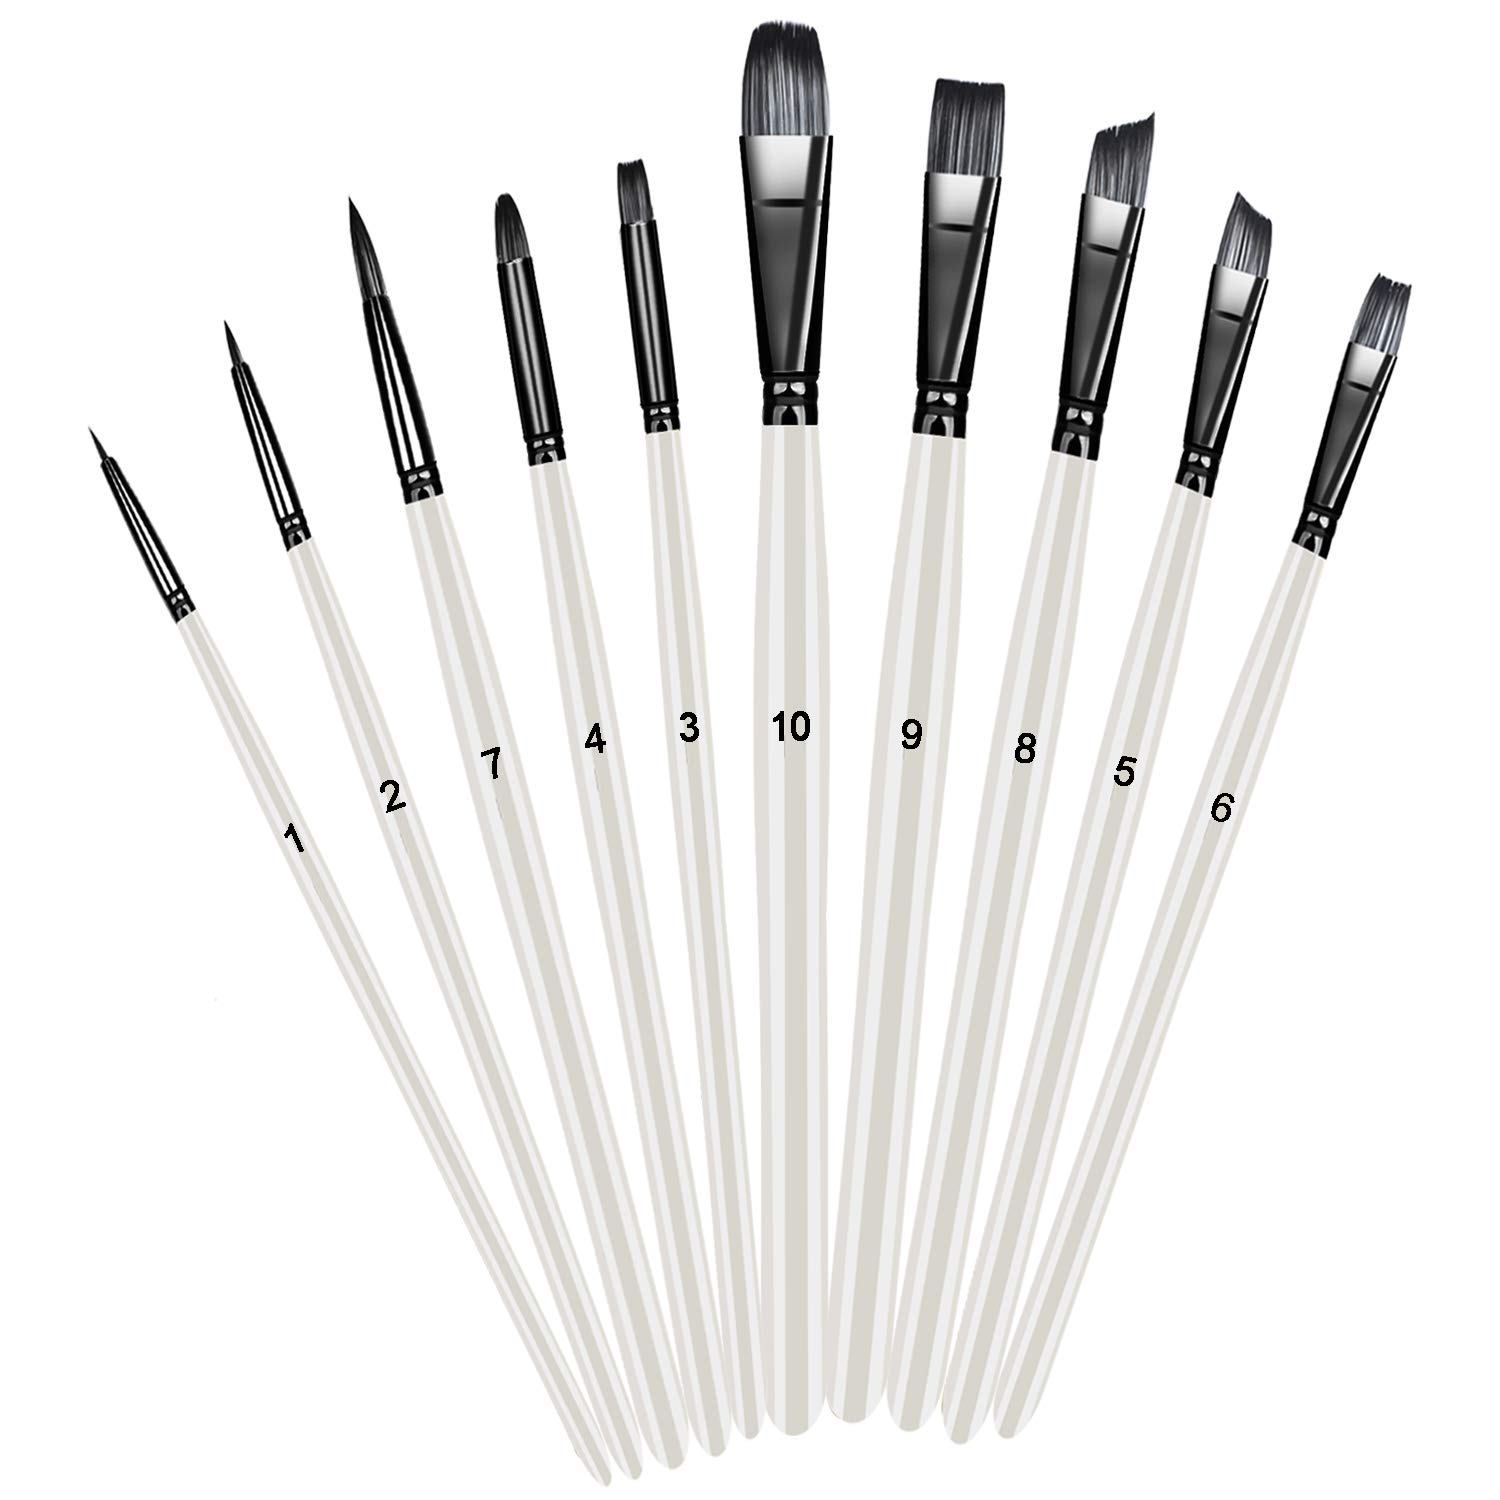 Paint Brushes Xpassion Handmade Professional Acrylic Brush 10 Pieces for Acrylic Watercolor Oil Painting, Pearl White